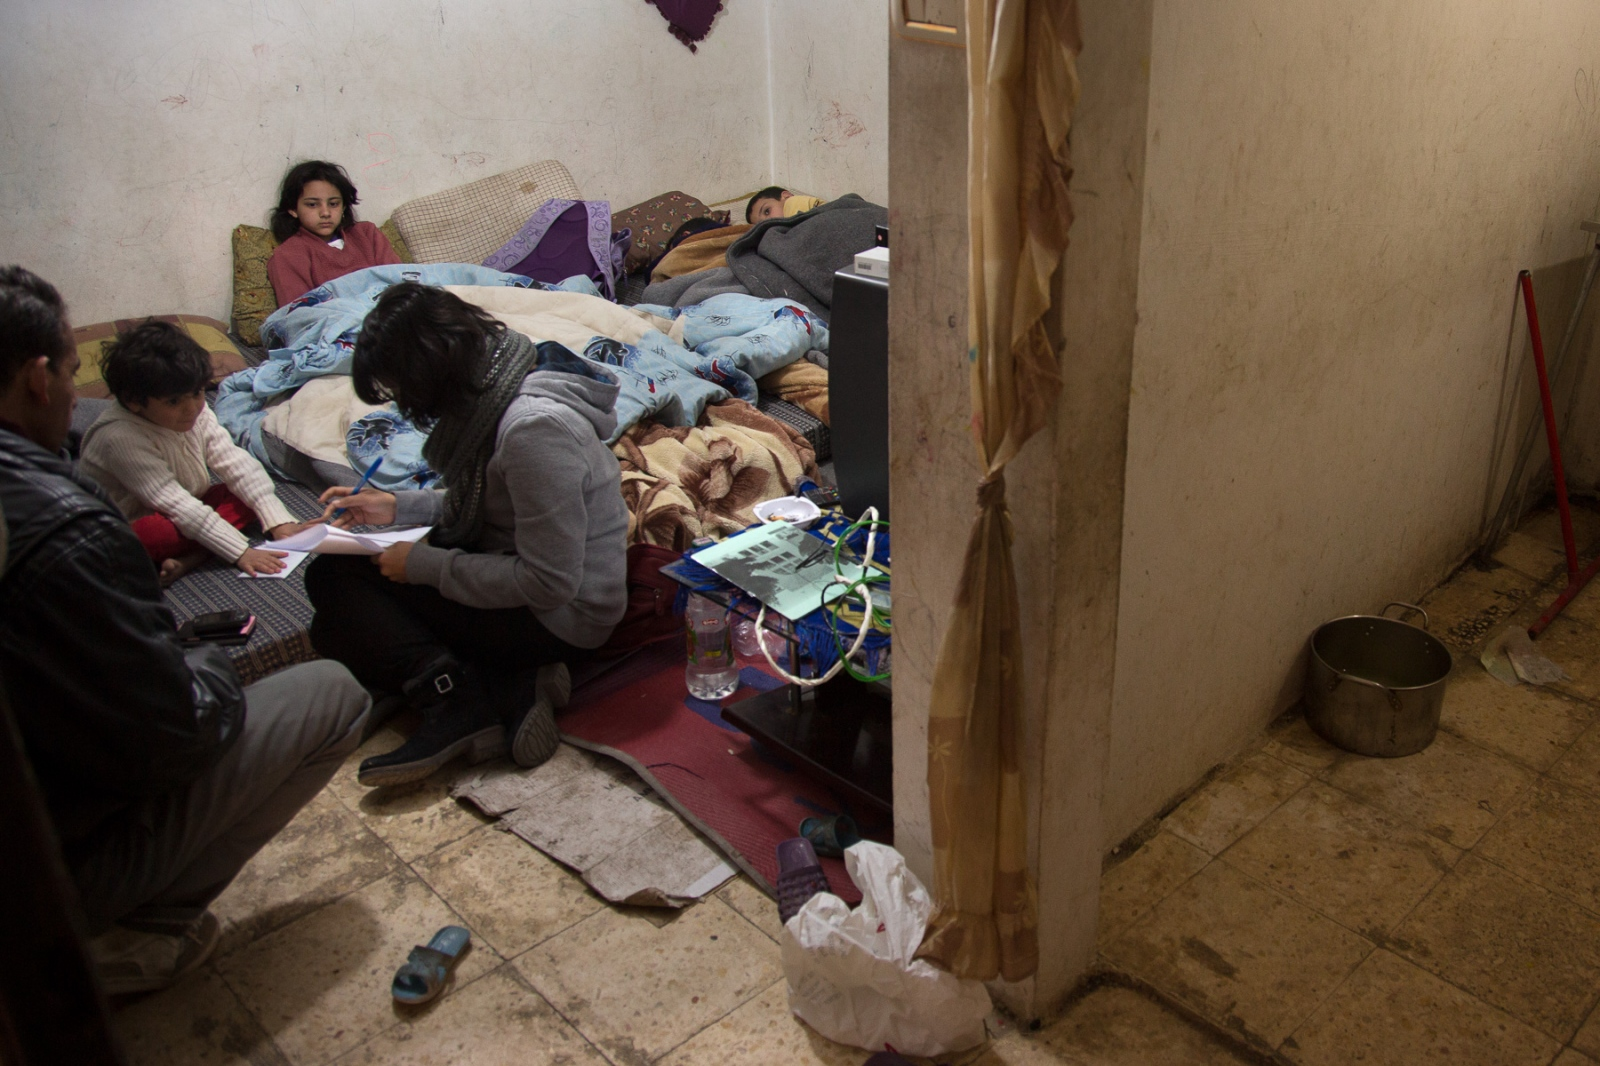 A UNHCR representative meets with a Syrian refugee family living in a basement to assess their needs. A majority of the refugees live hidden away in cities throughout Jordan.